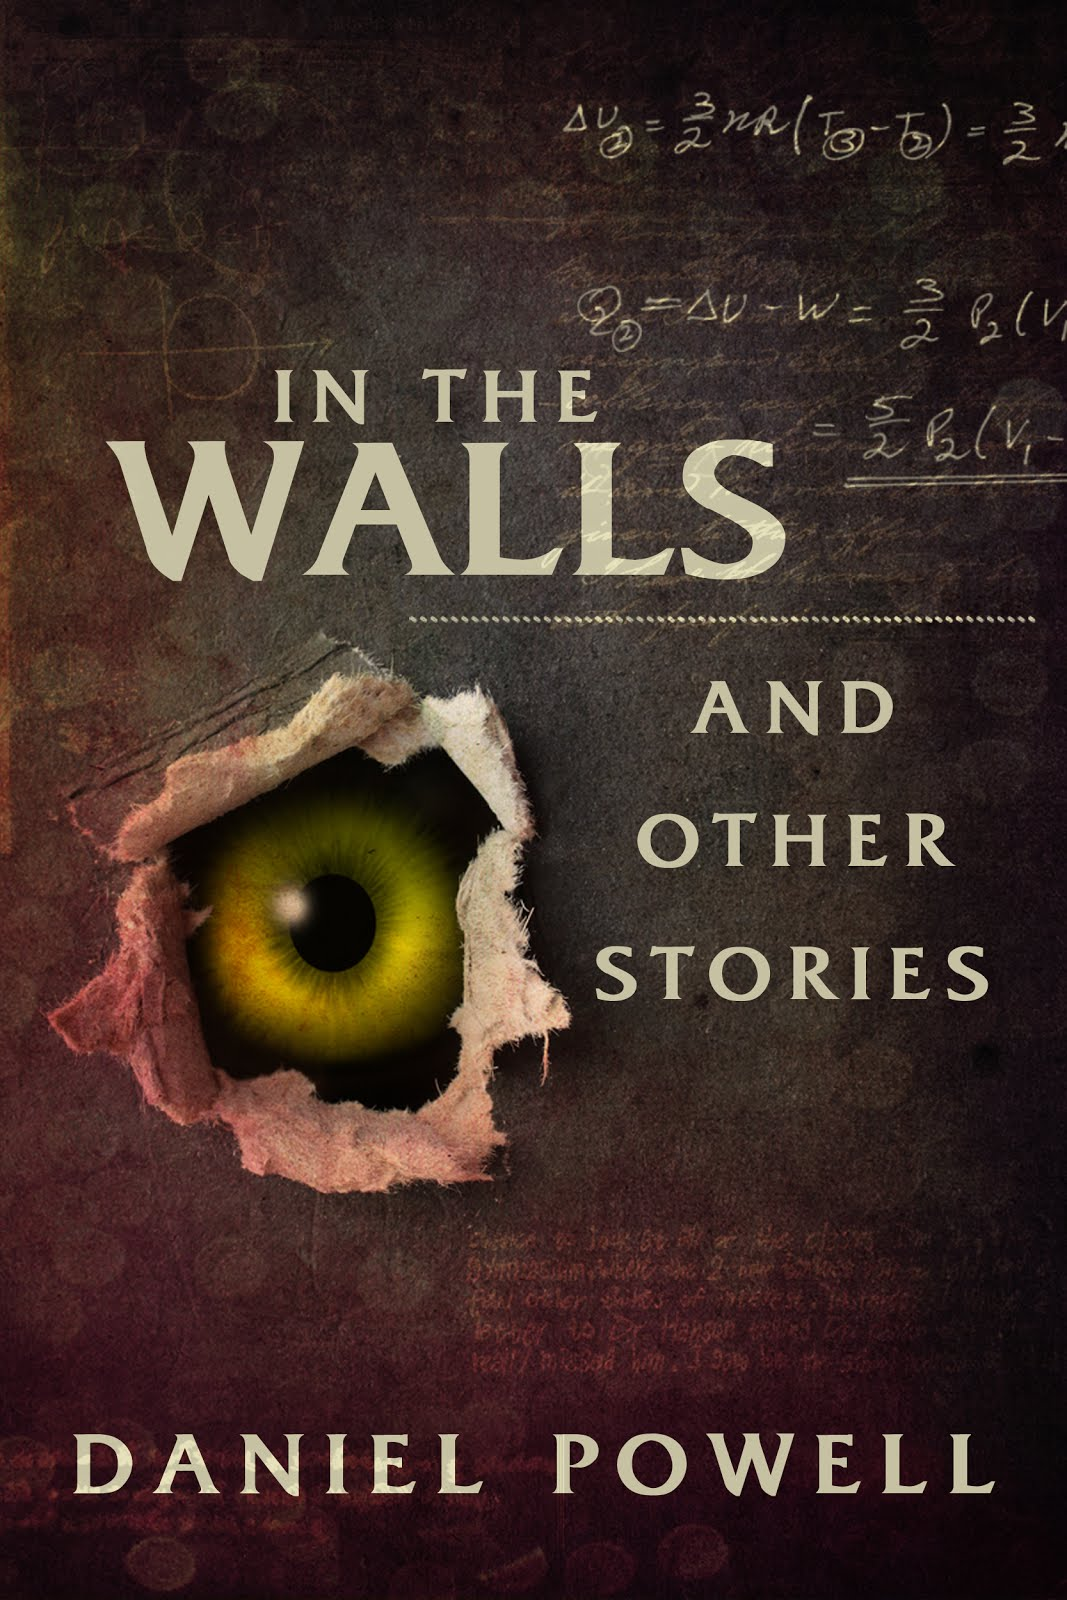 In the Walls and Other Stories